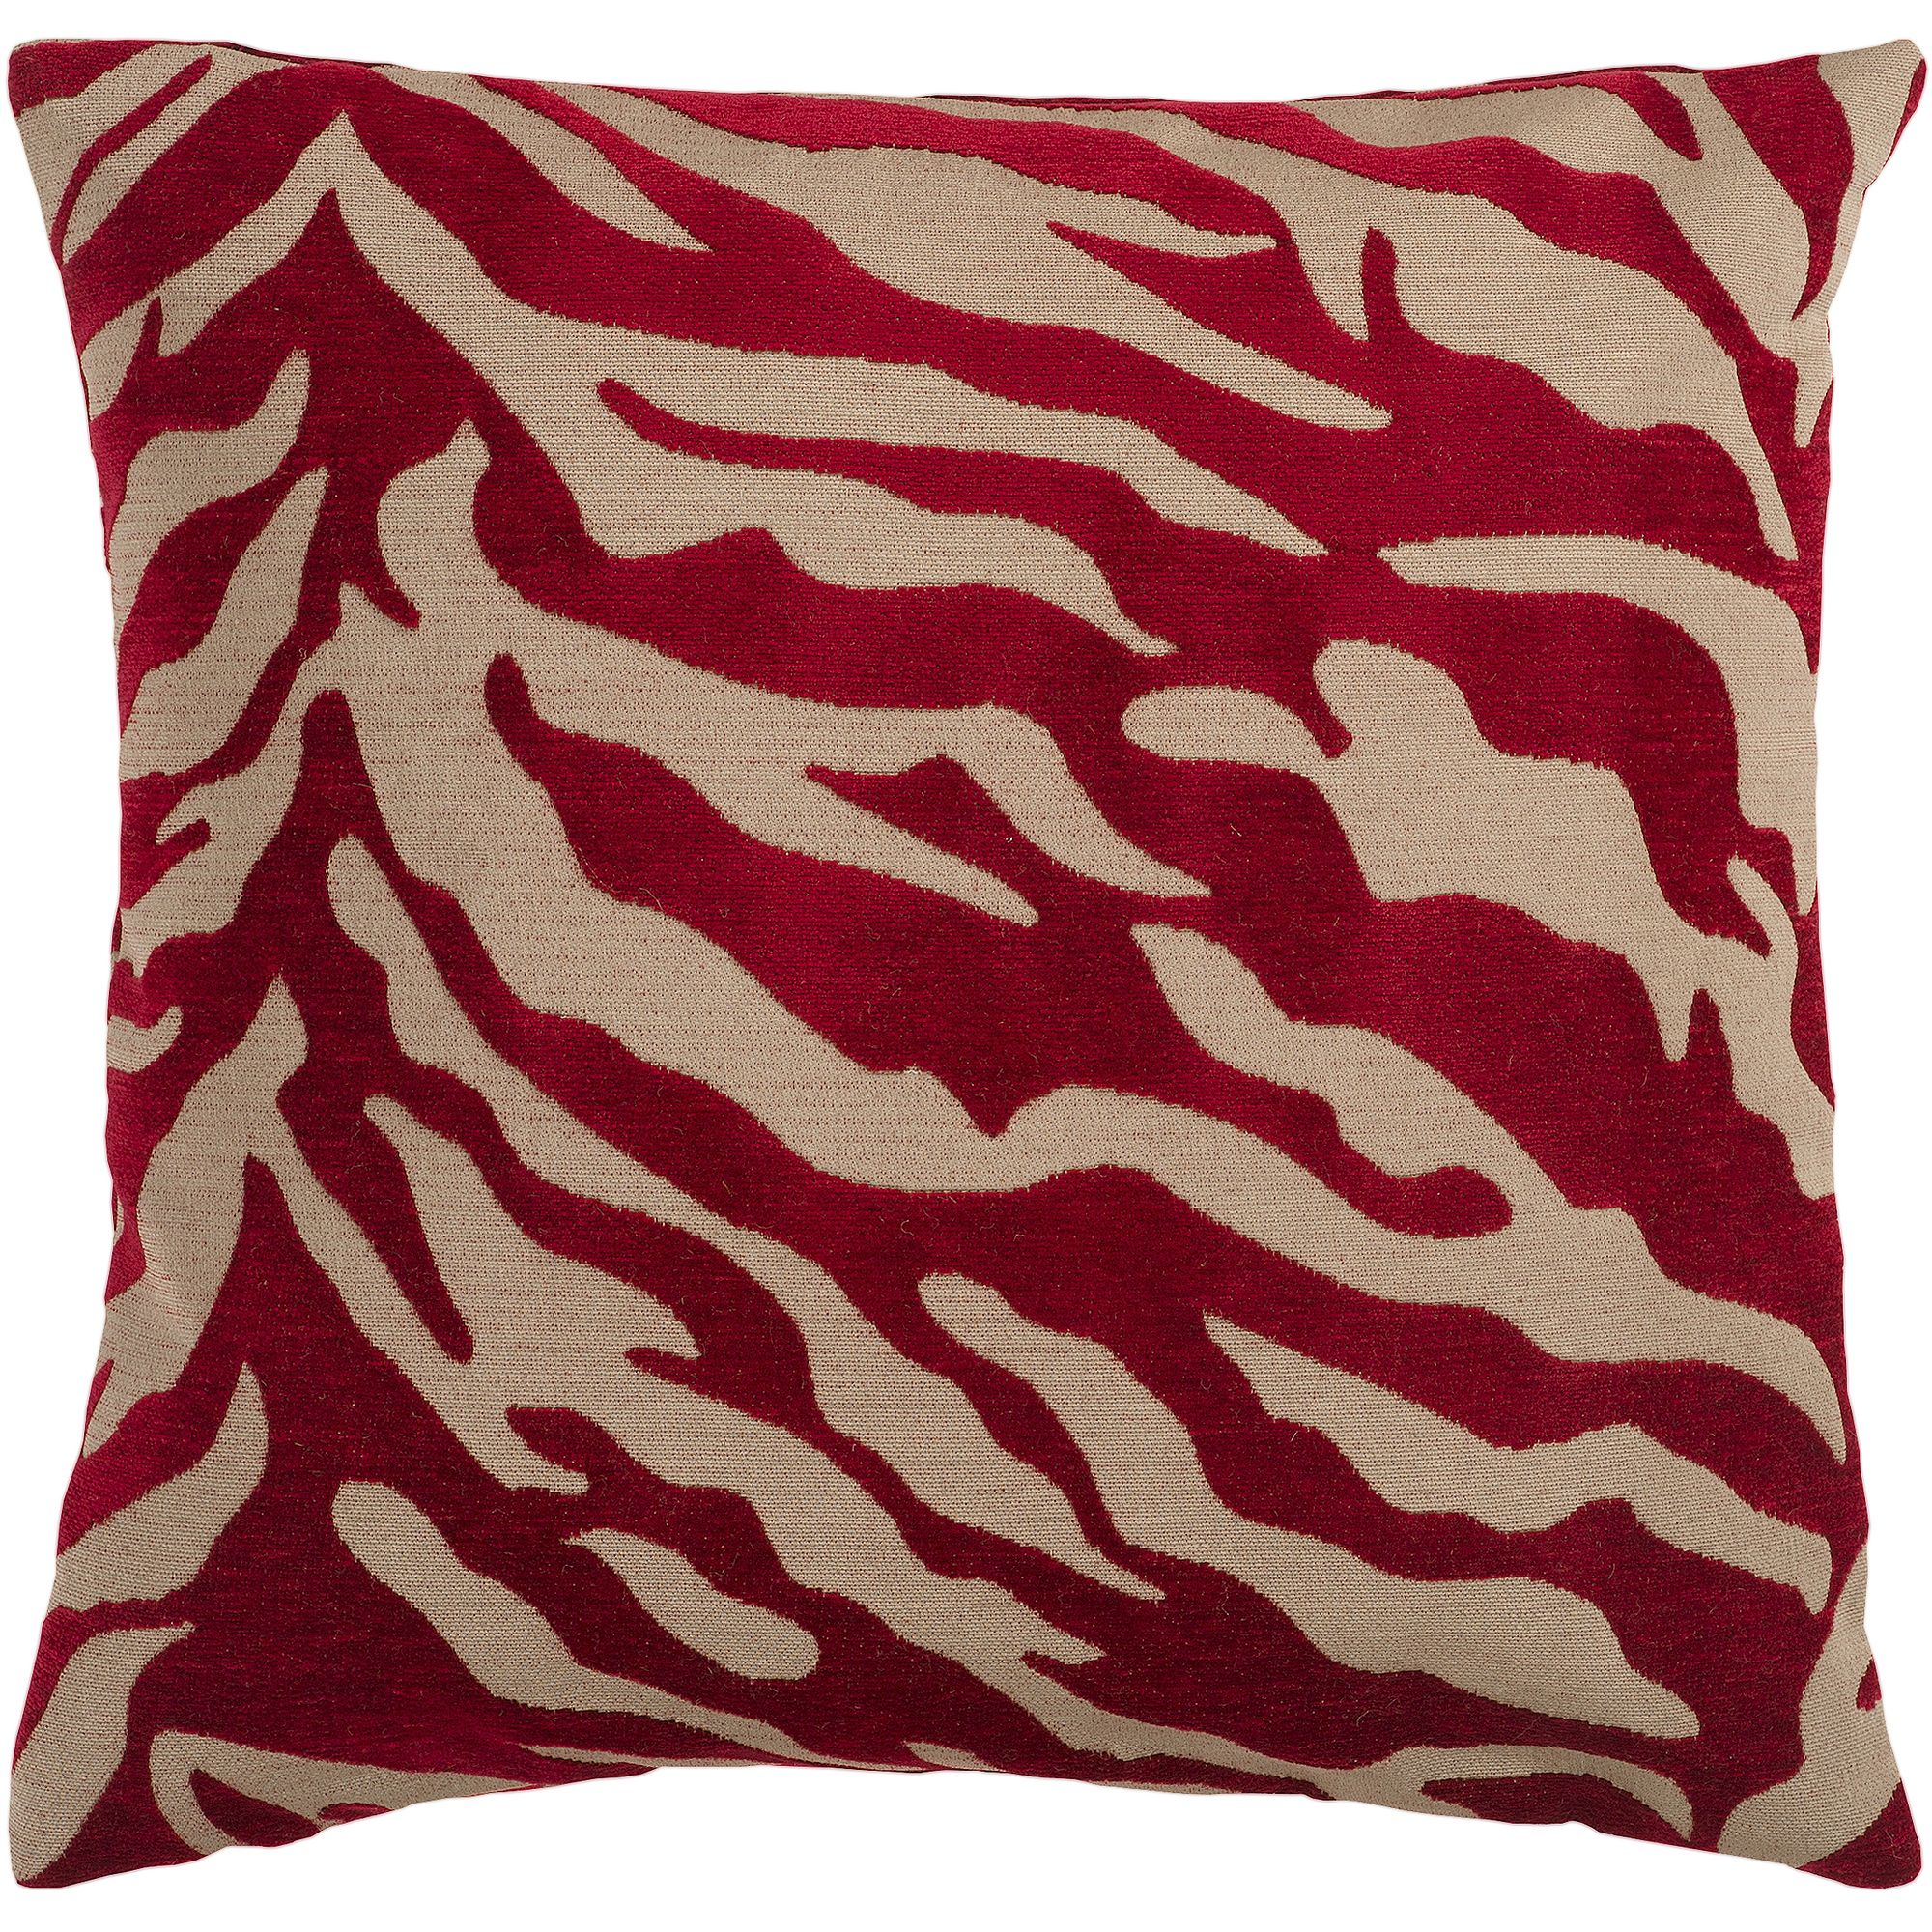 Art of Knot River Hand Crafted Zippy Zebra Decorative Pillow with Poly Filler, Burgundy